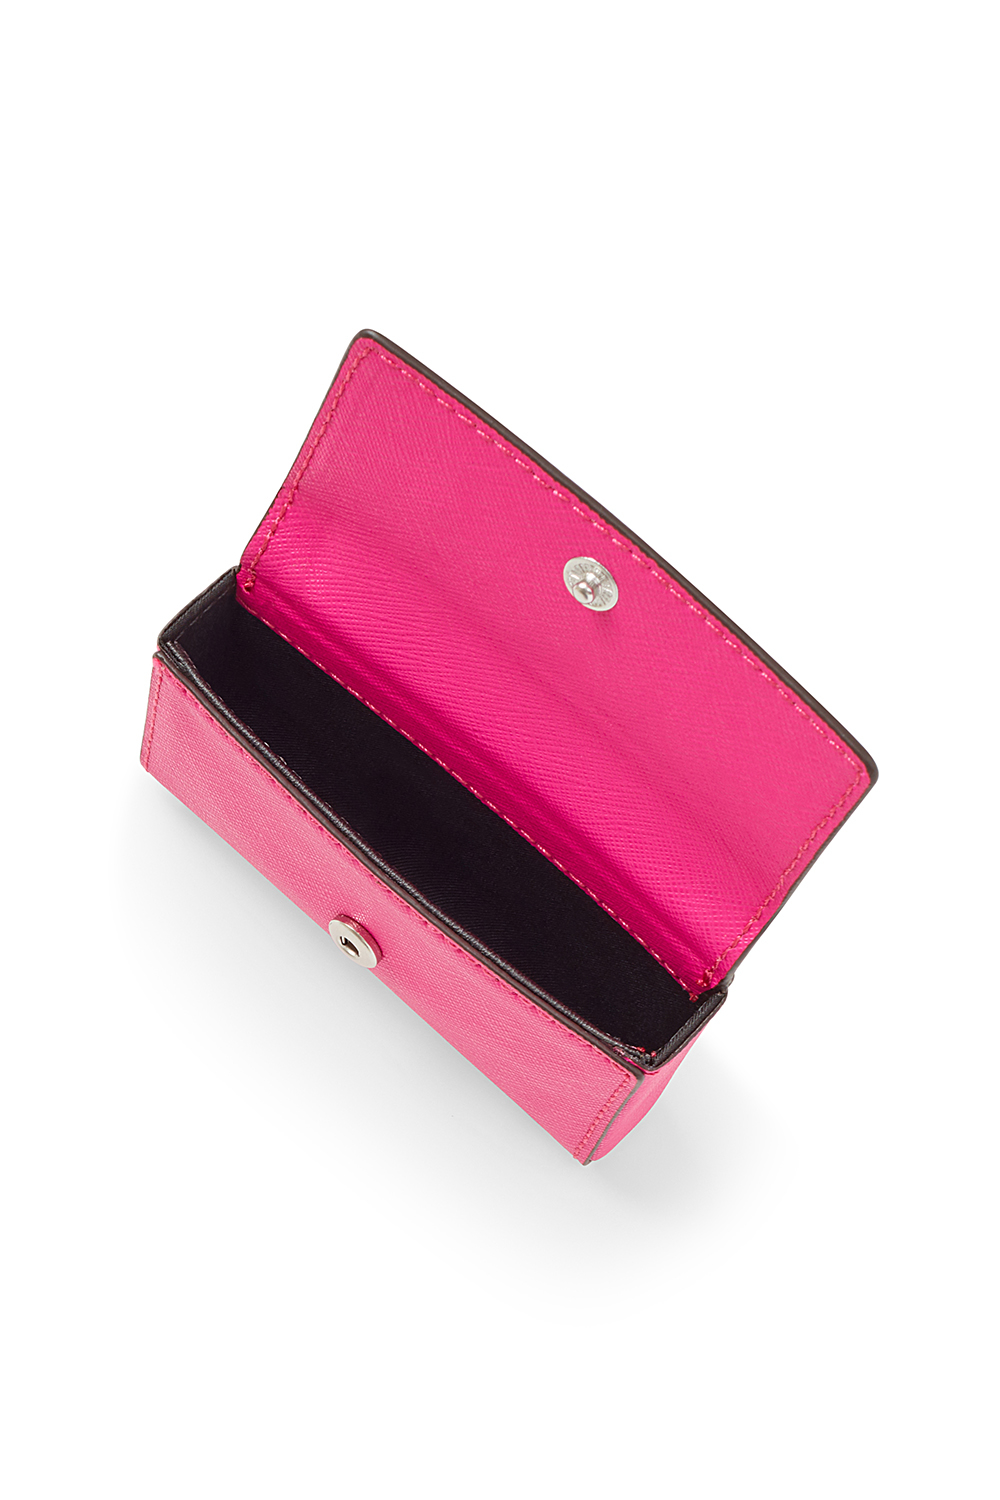 Rebecca Minkoff Business Card Holder Like A Boss In Pink